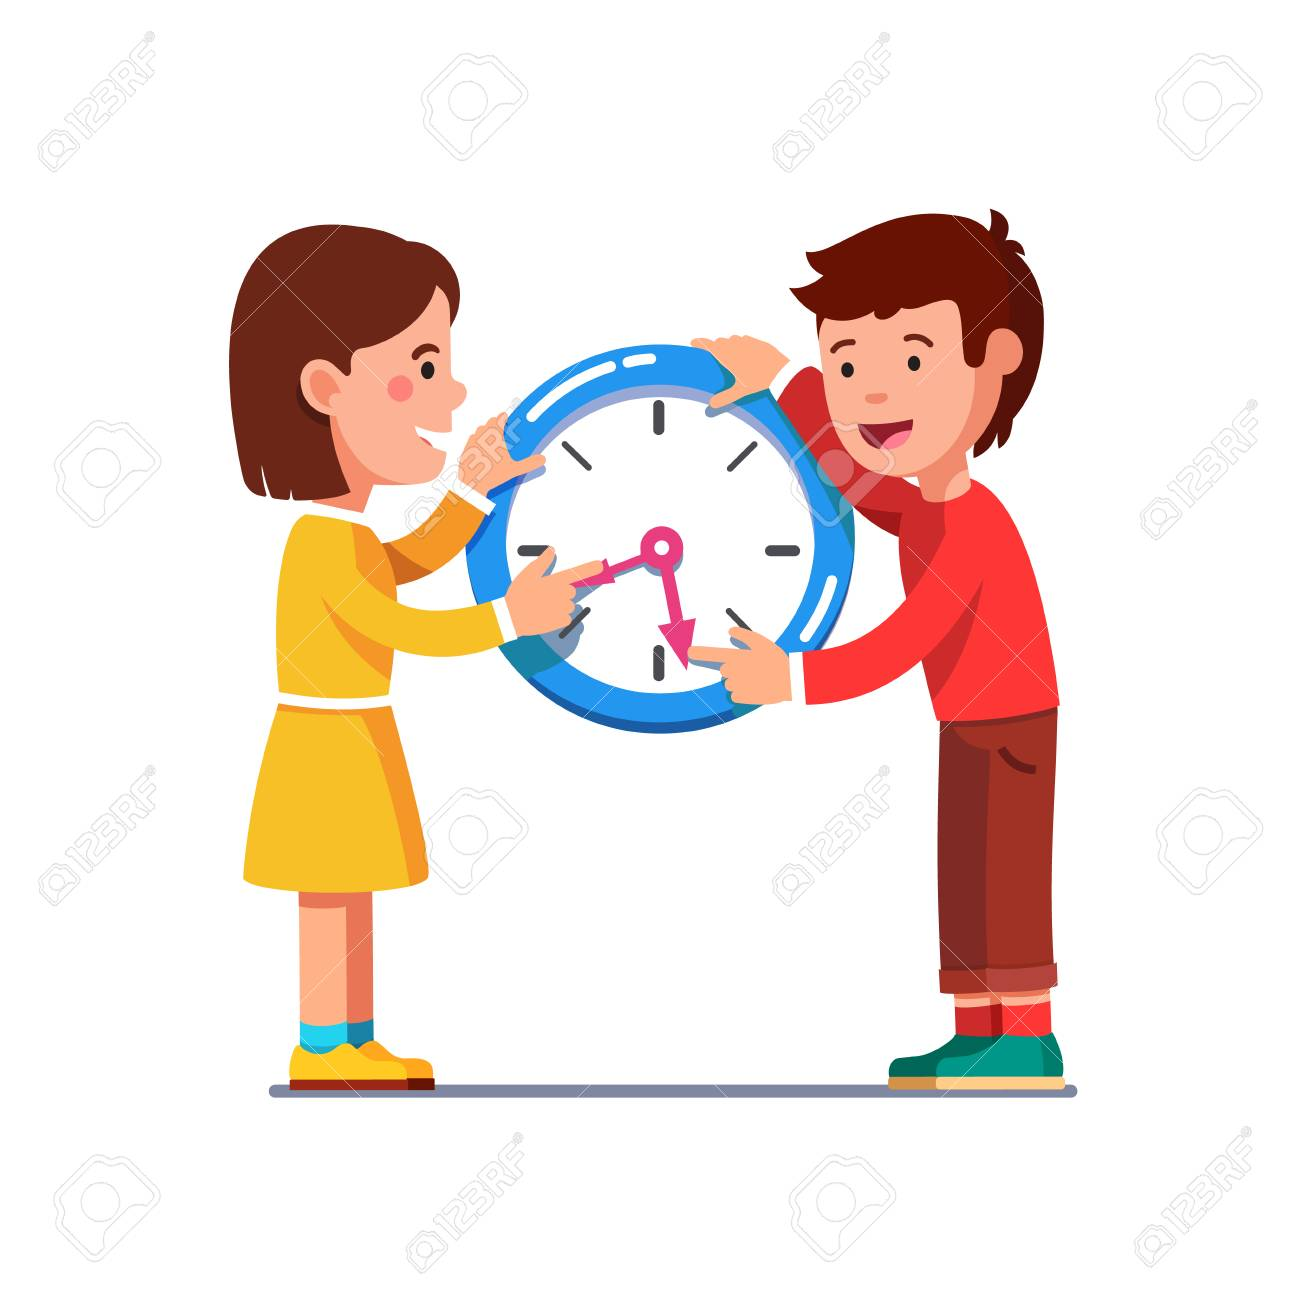 School kids moving clock hands reading time.